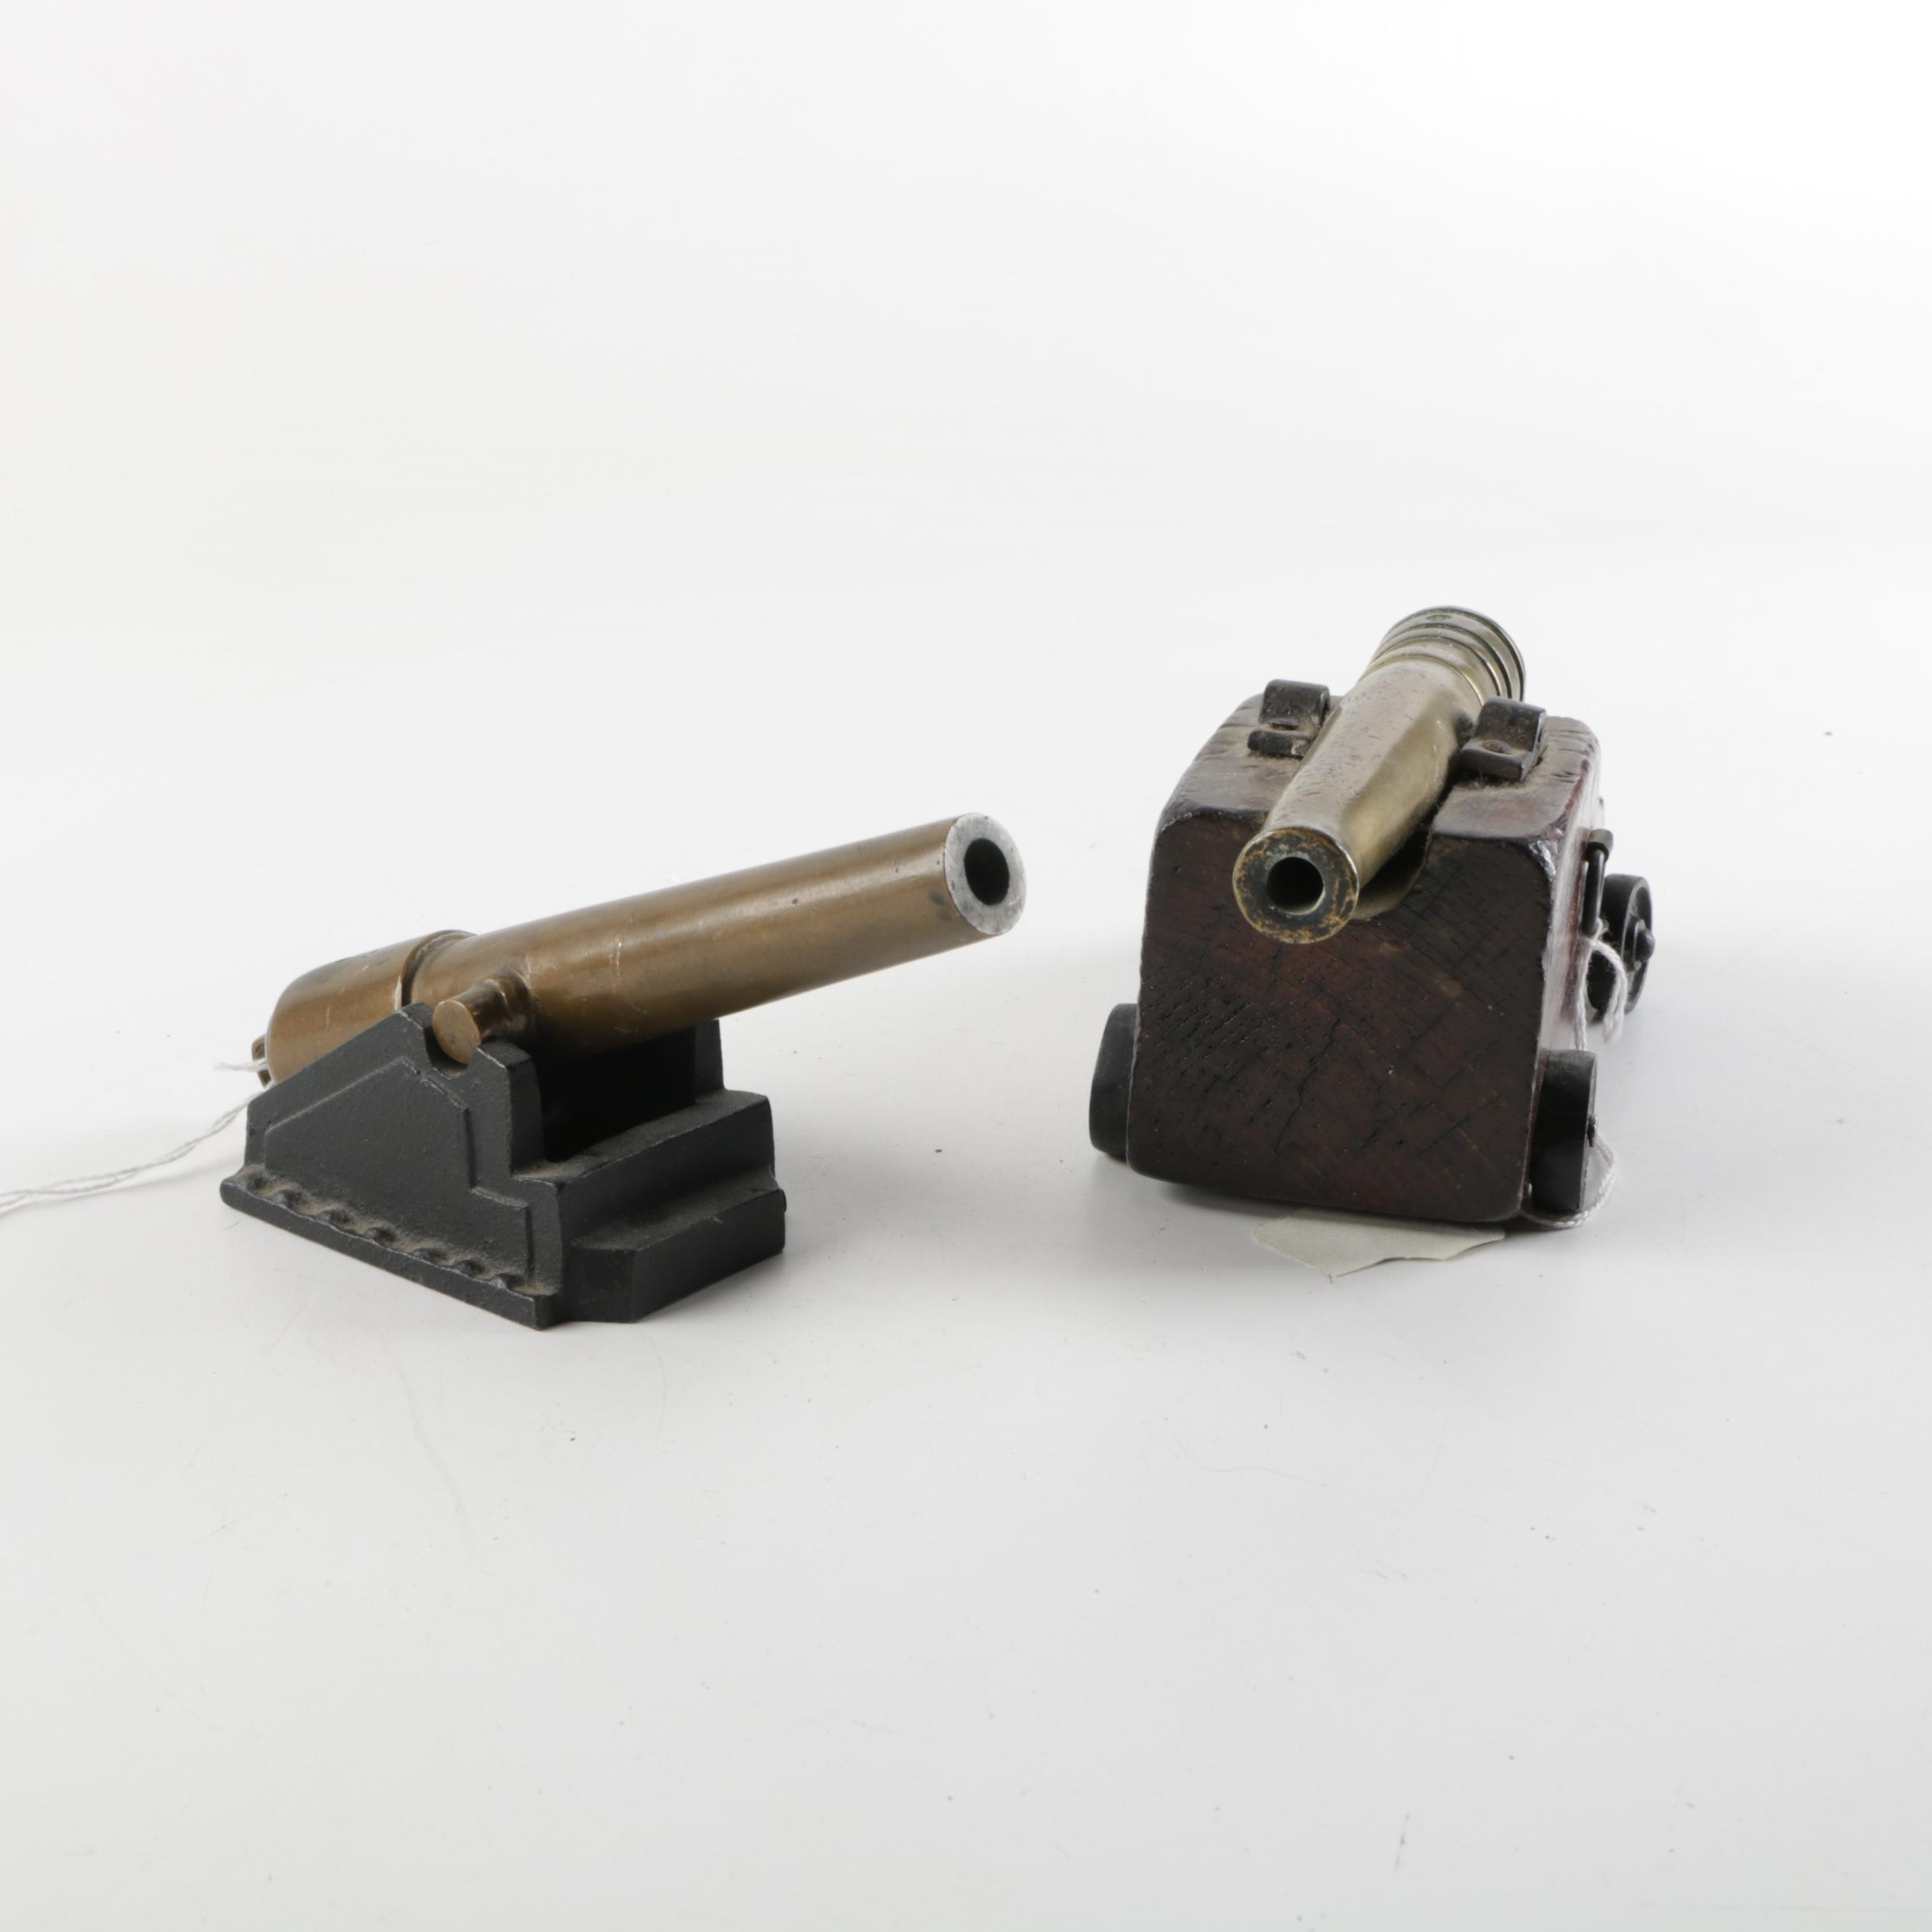 Cannon Models